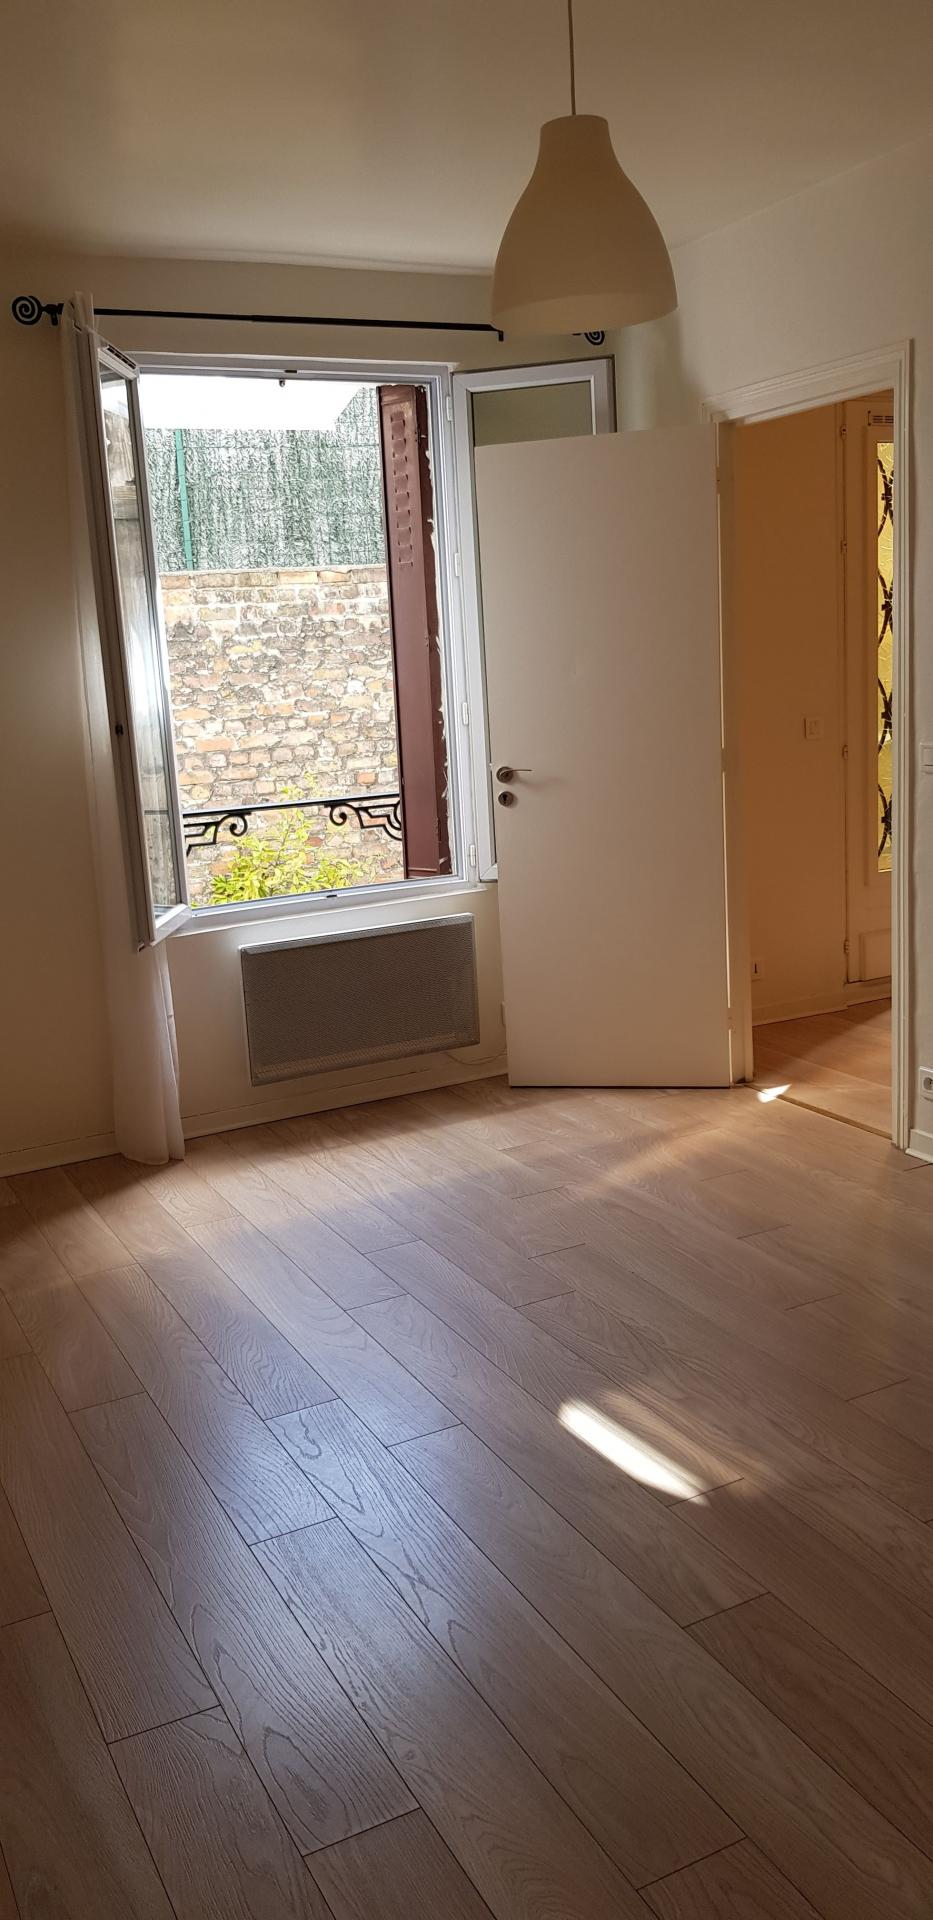 LOCATION LE PRE SAINT GERVAIS APPARTEMENT DE 30 M²